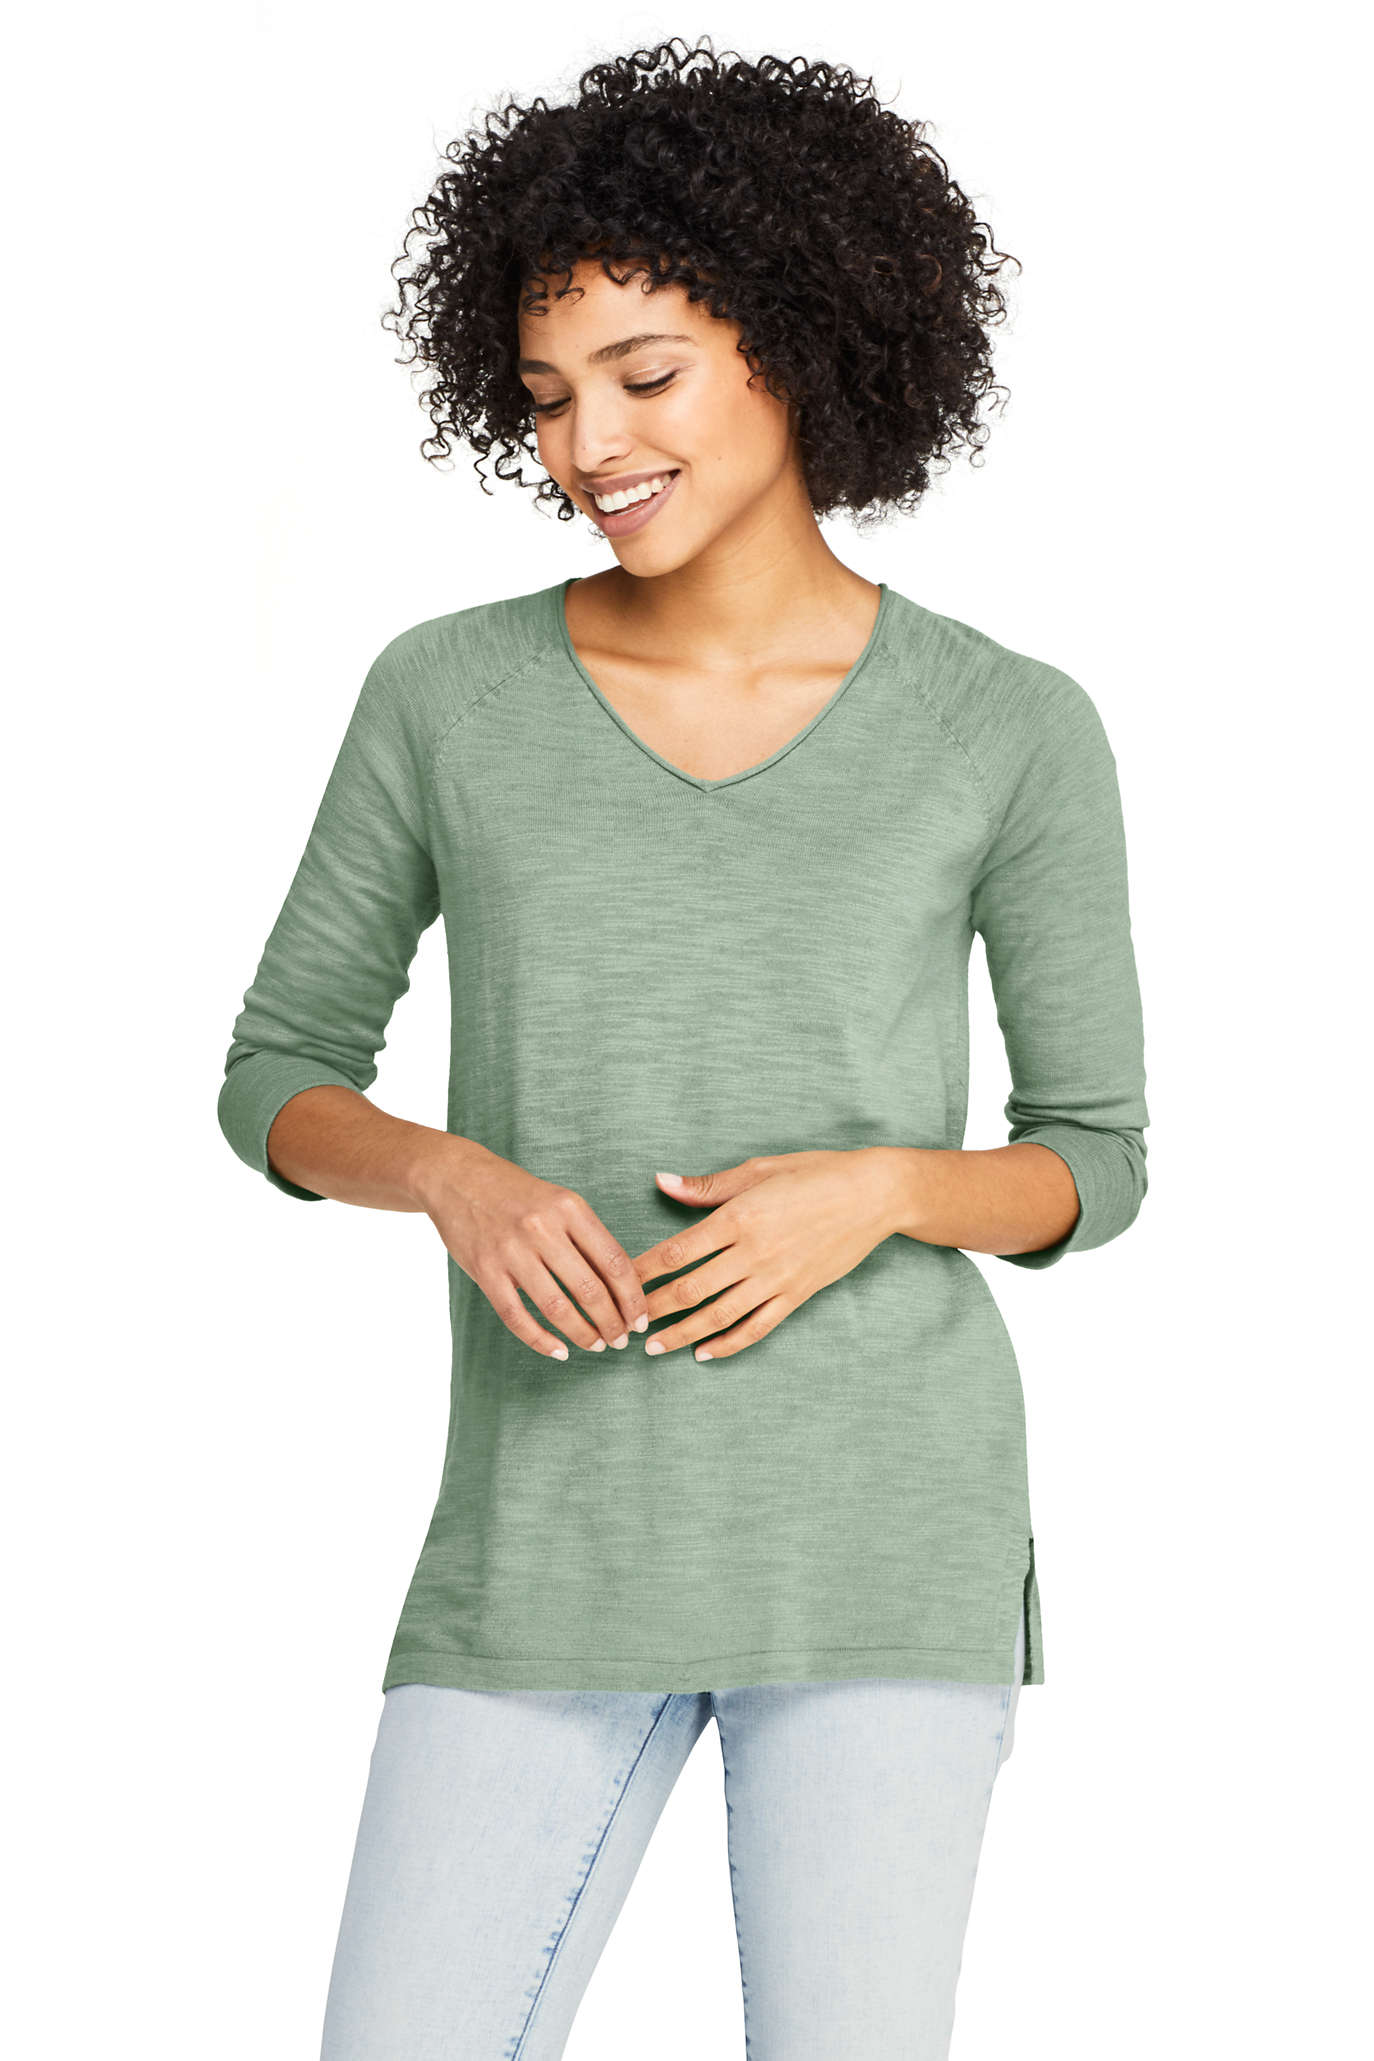 Women's Drifter Shaker Cotton Quarter Zip Mock Neck Sweater